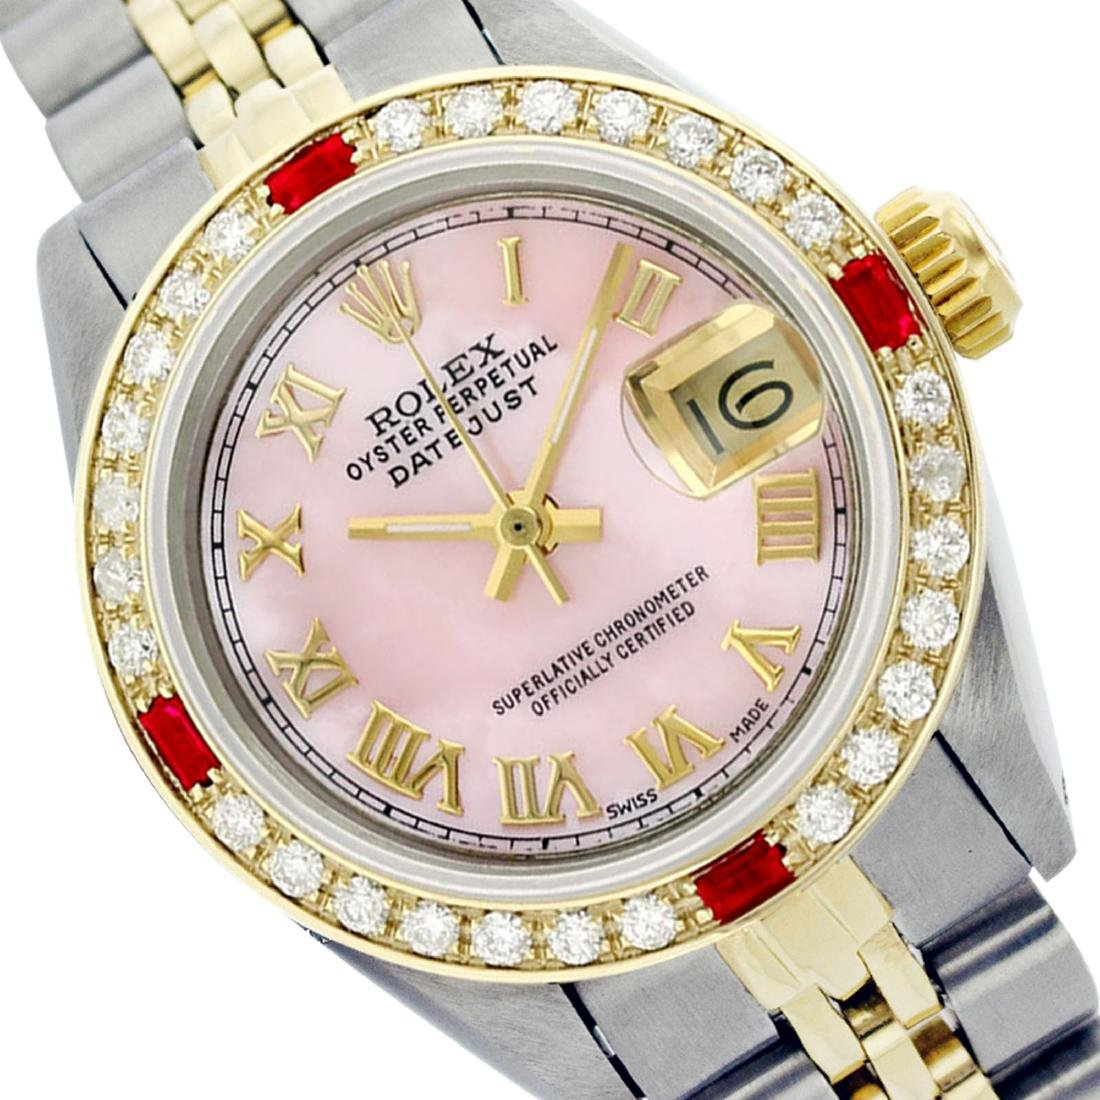 Rolex Ladies Two Tone 14K Gold/ss, Roman Dial with